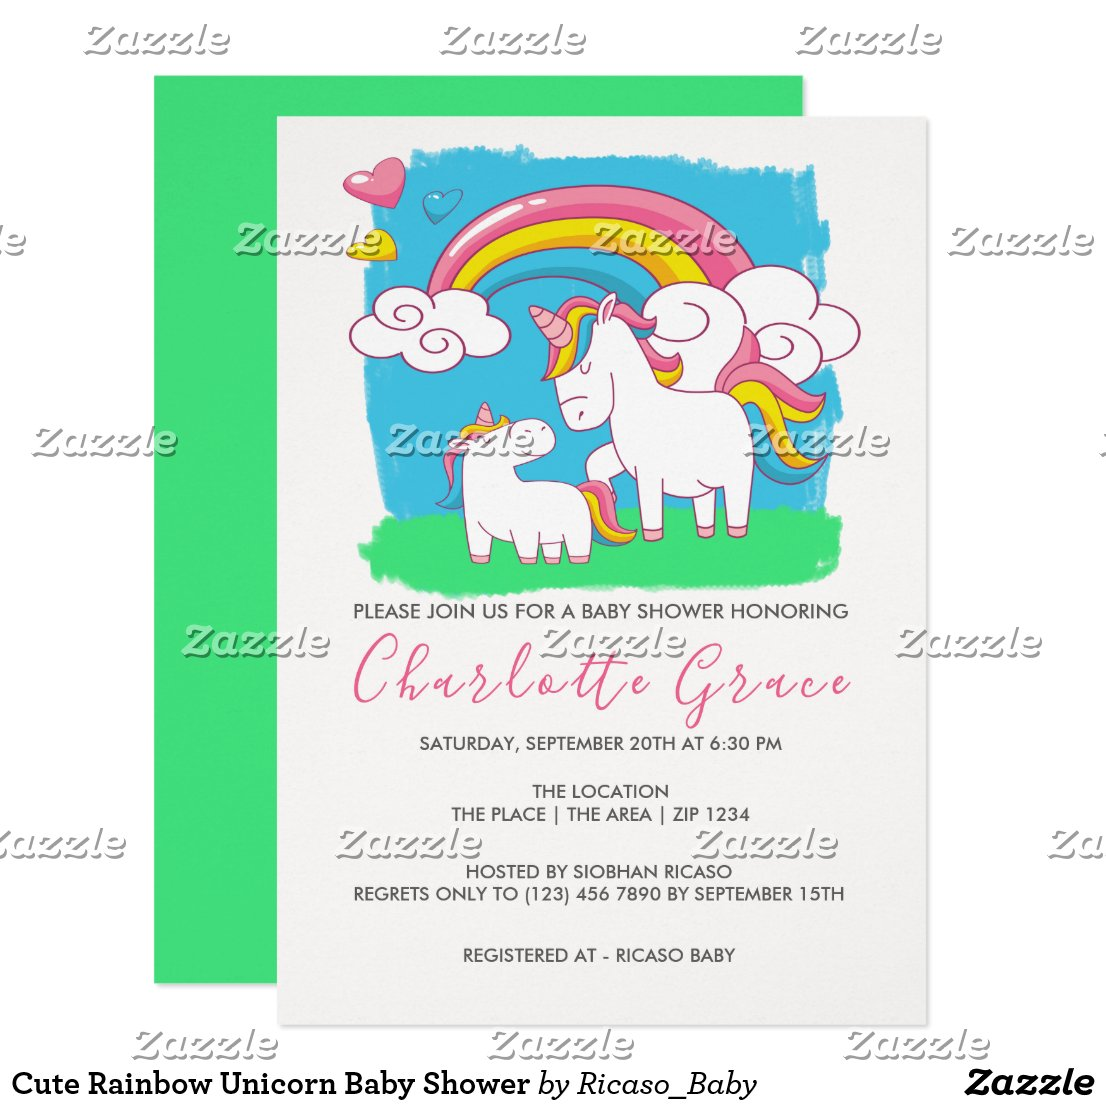 Cute Rainbow Unicorn Baby Shower Invitation